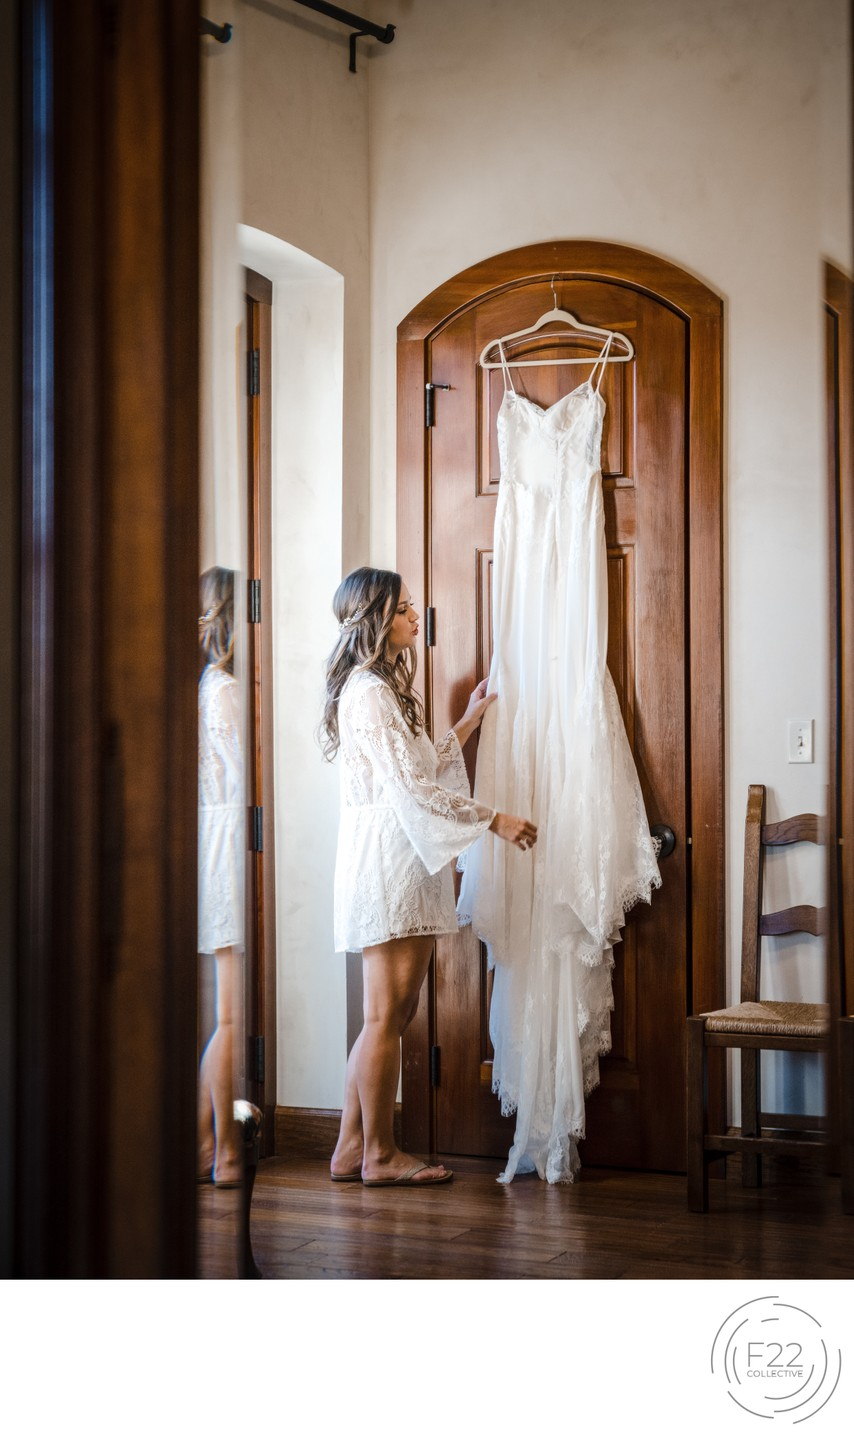 Best Wedding Photographers Sacramento Dress in Mirror